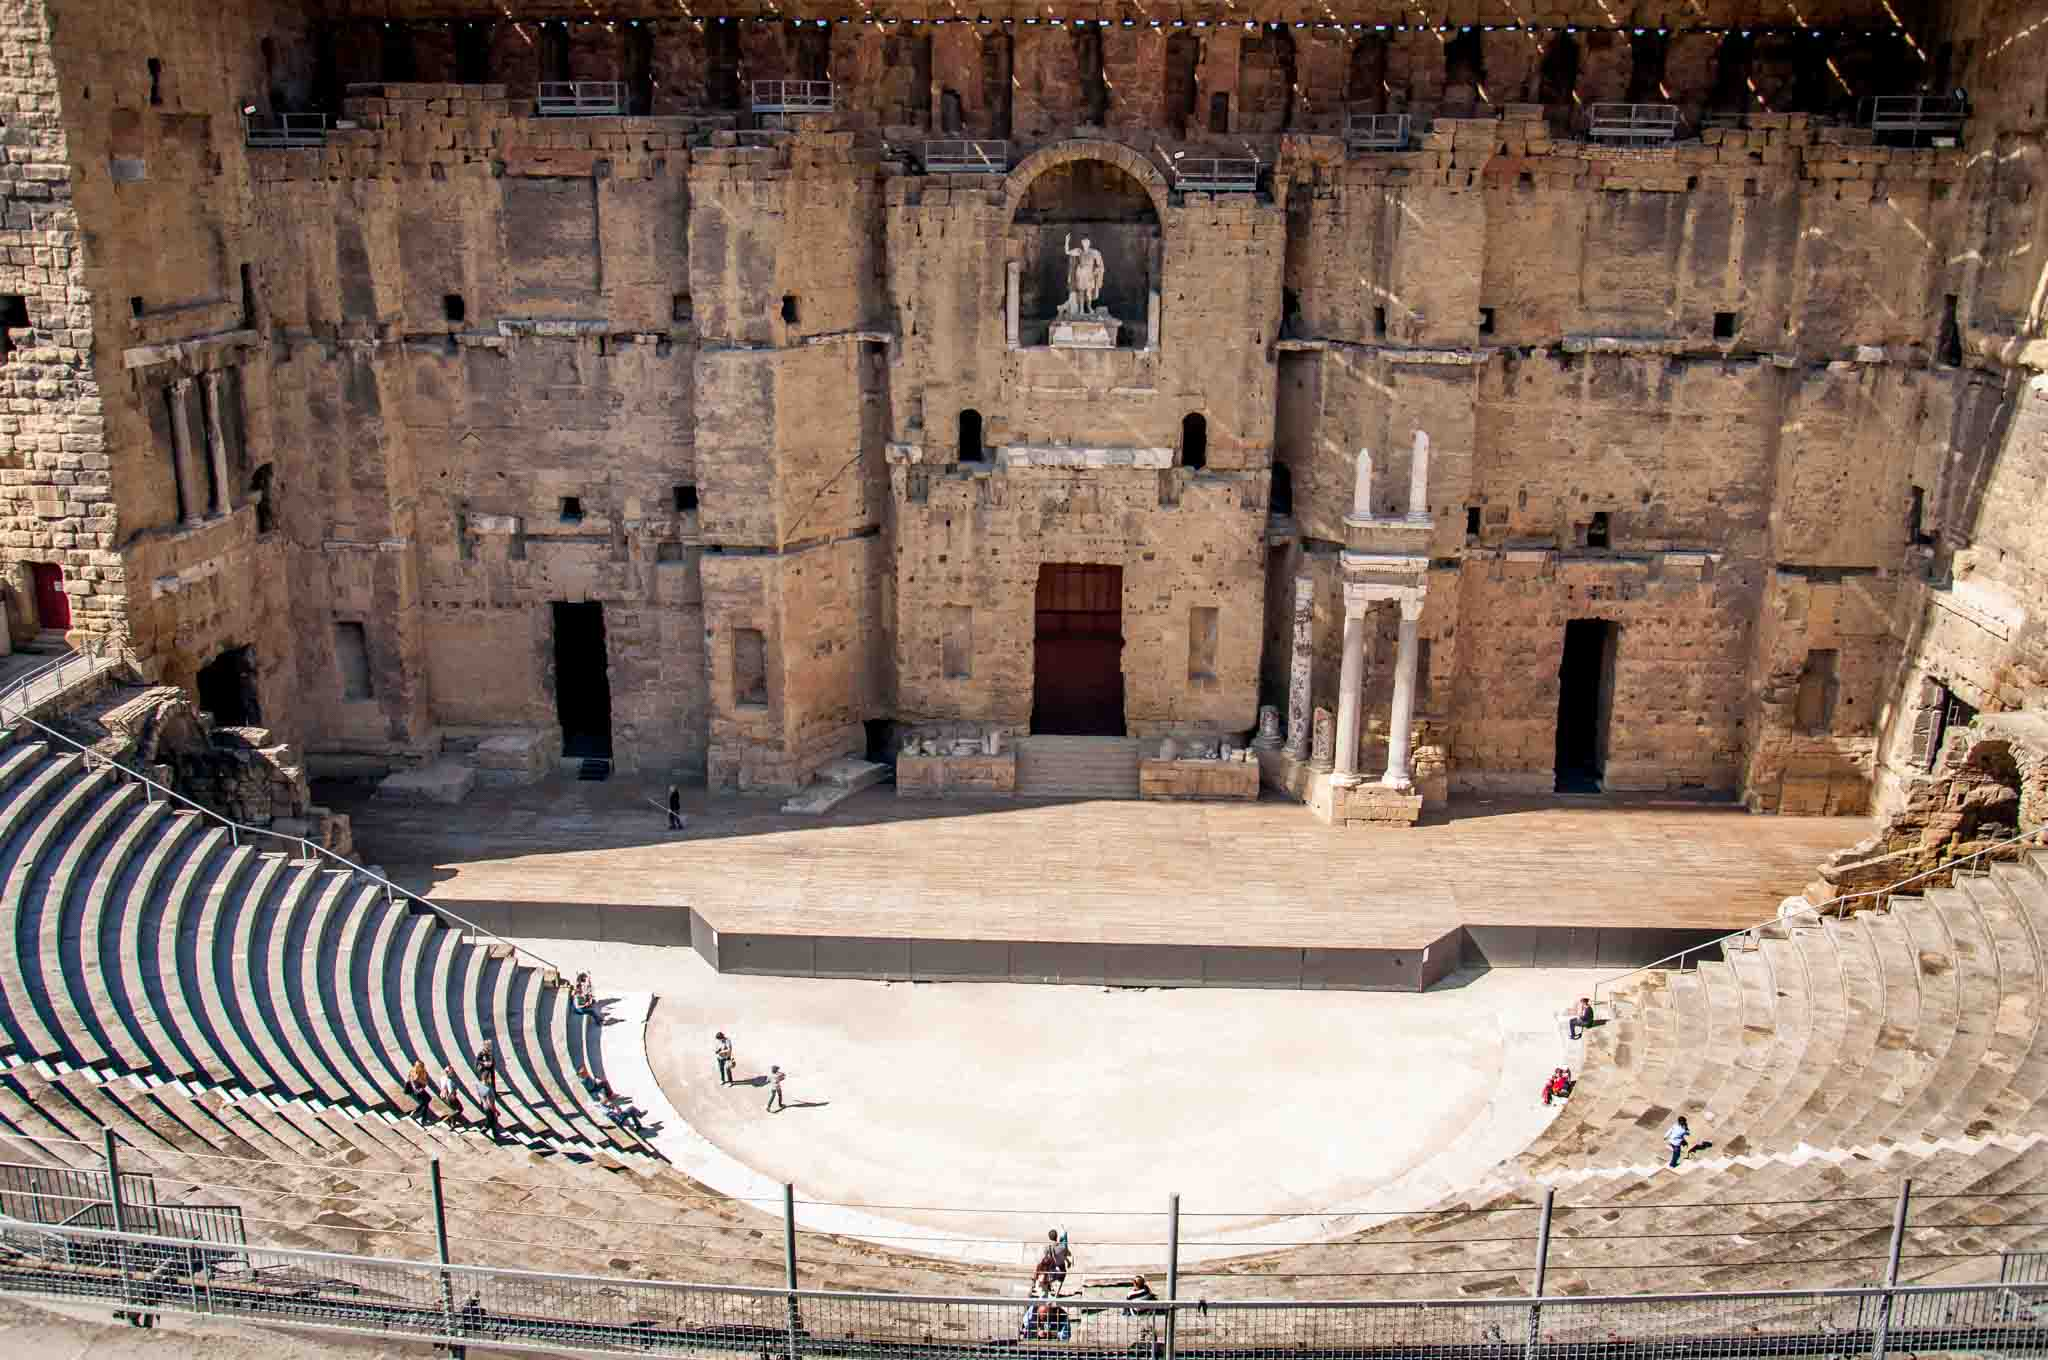 Stage and semi-circular seating at the ancient Theater of Orange